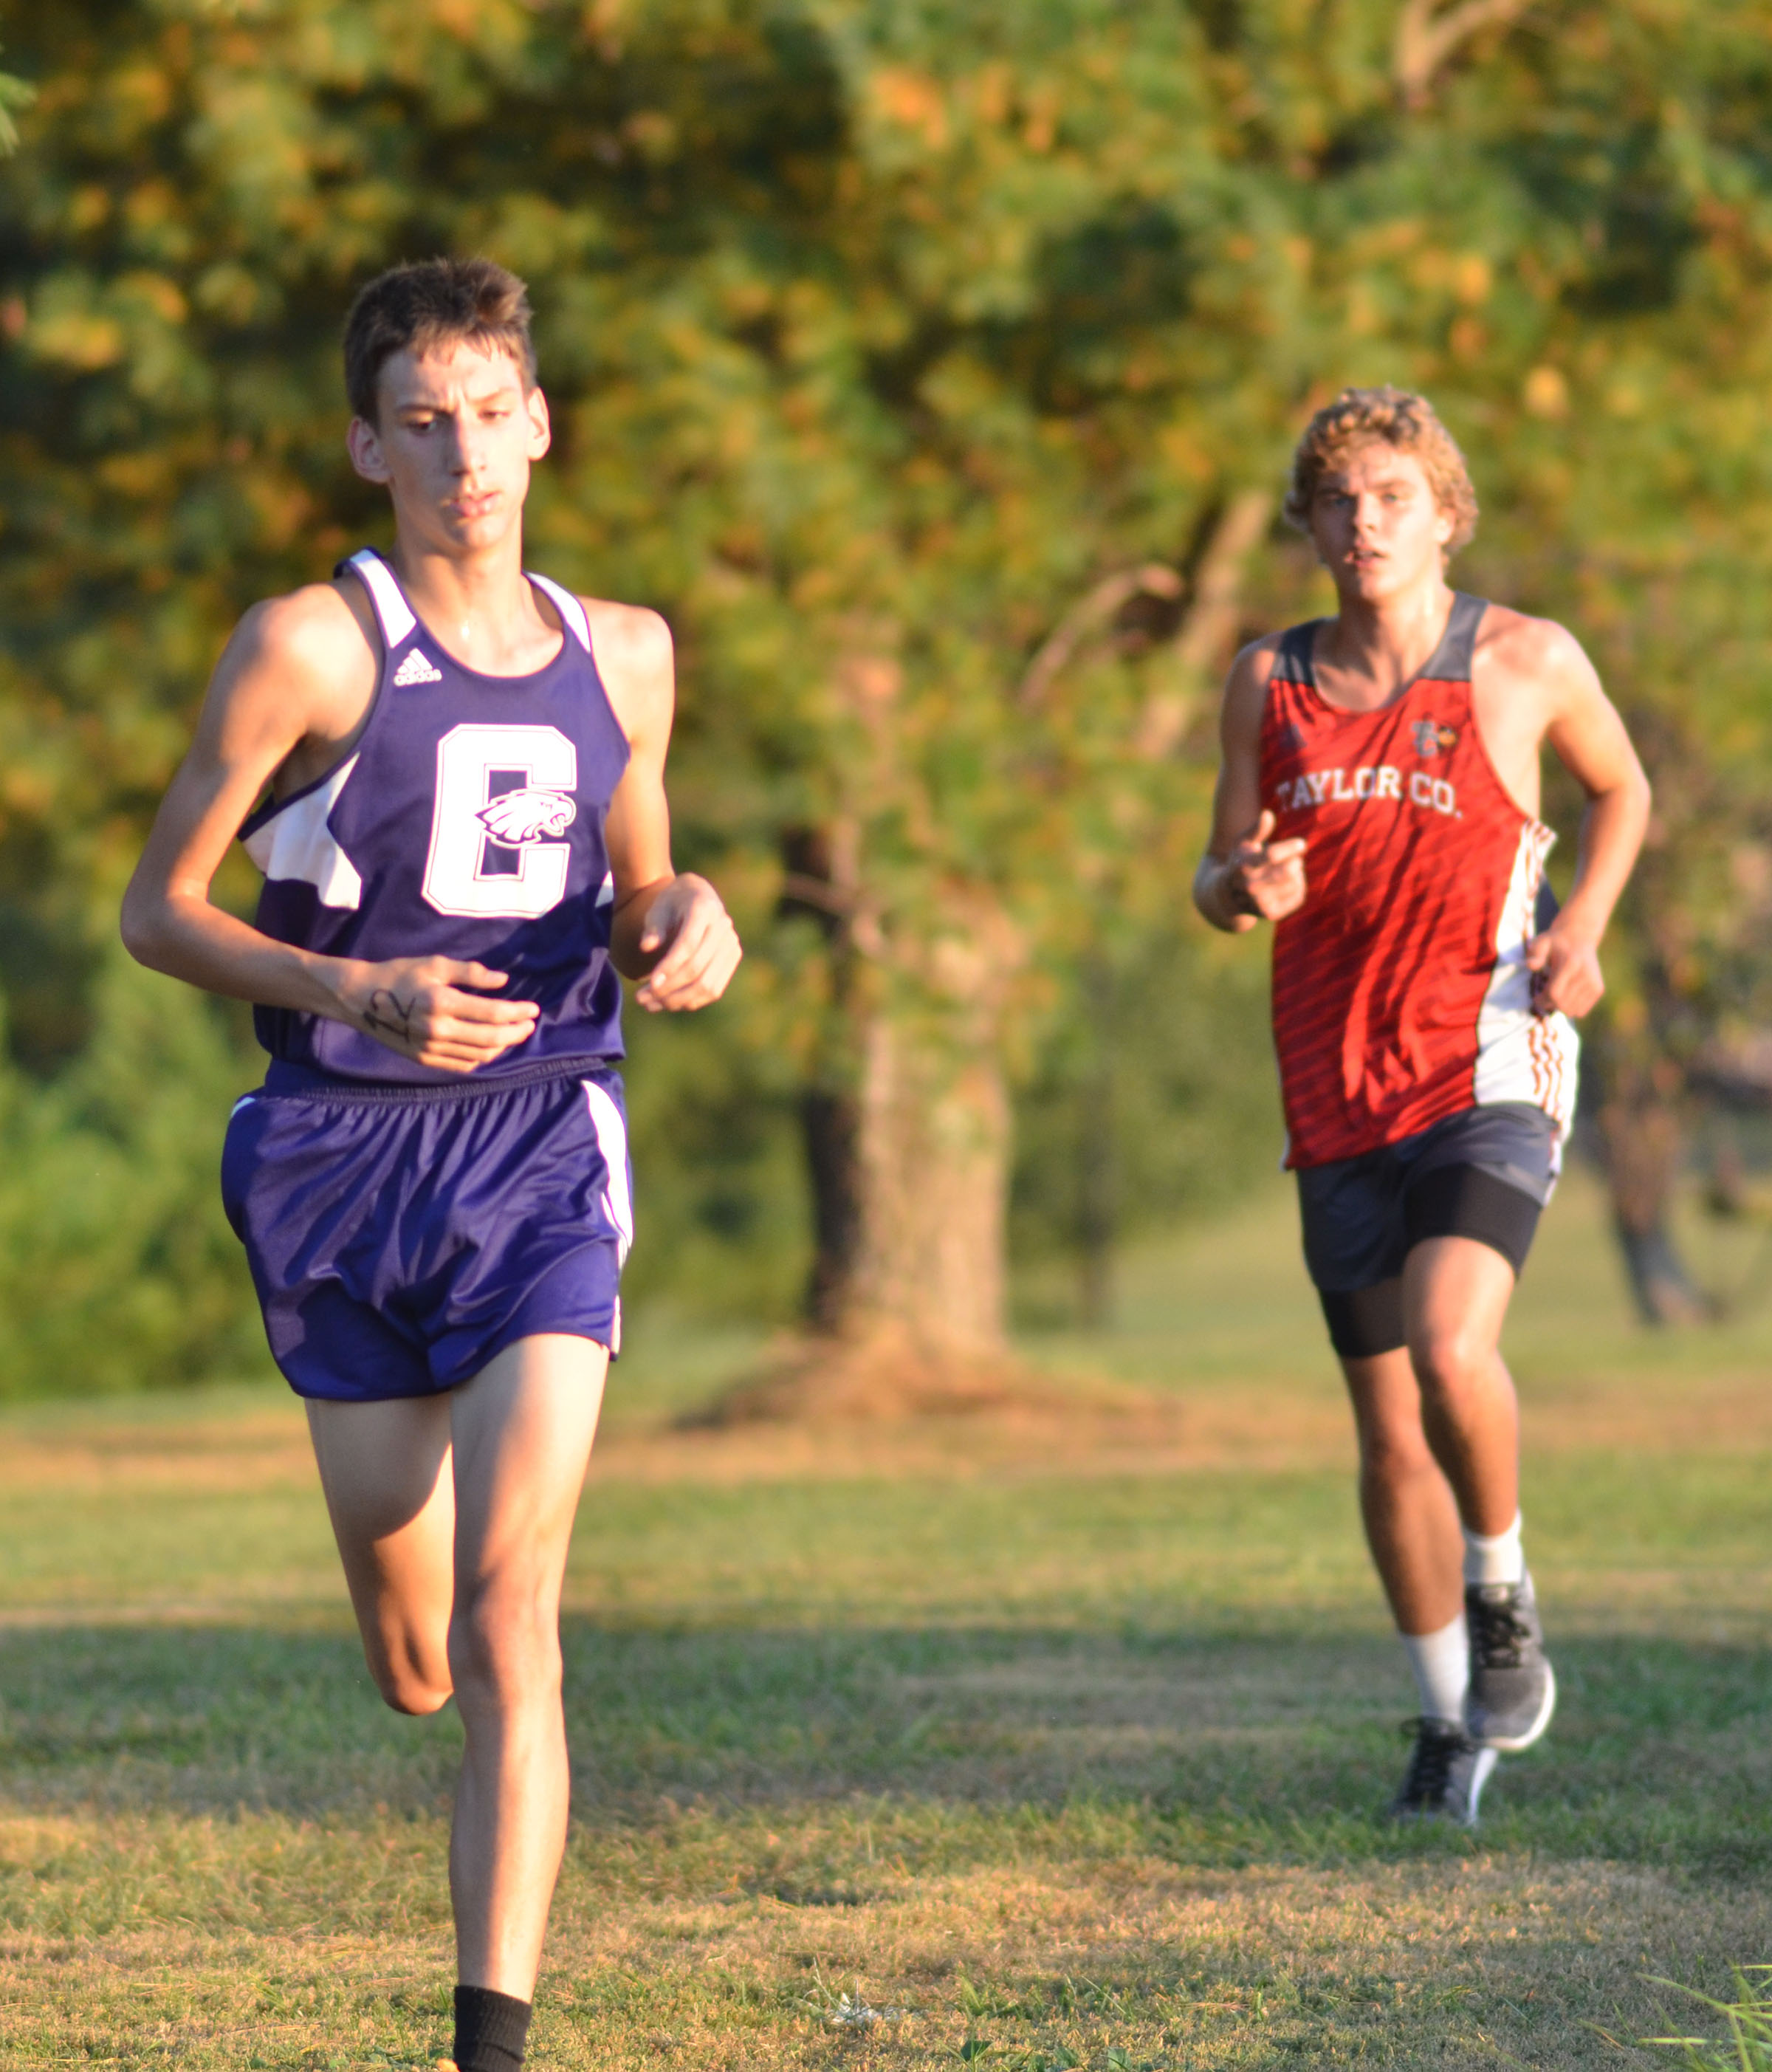 CHS sophomore Evan McAninch runs ahead of a Taylor County runner.